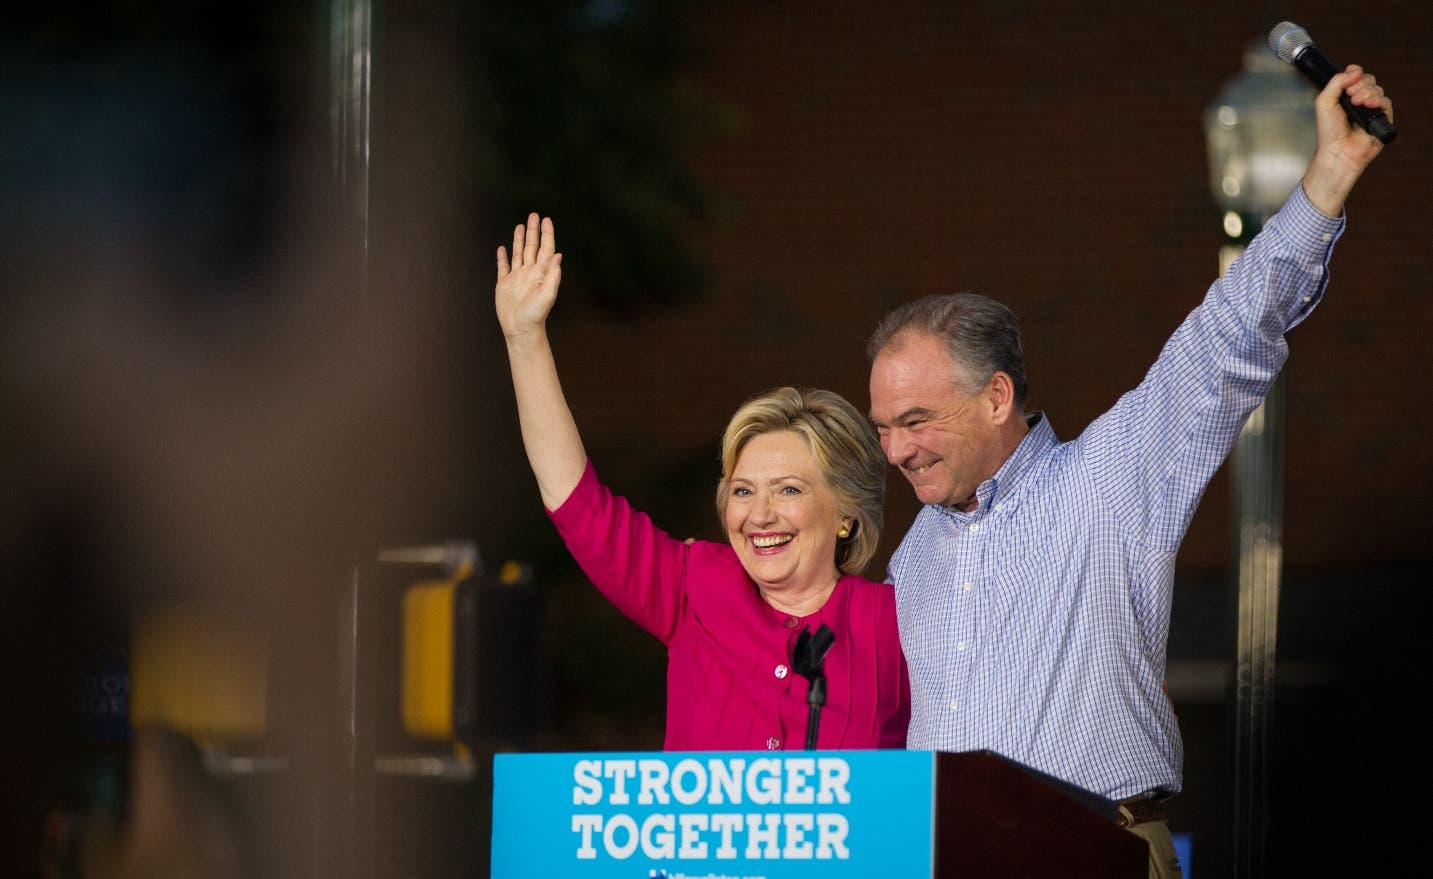 Democratic presidential candidate Hillary Clinton and vice presidential candidate Tim Kaine wave during a rally at Broad Street Market in Harrisburg, Pa., Friday, July 29, 2016. Clinton and Kaine begin a three day bus tour through the rust belt. (Alex Driehaus/PennLive.com via AP)